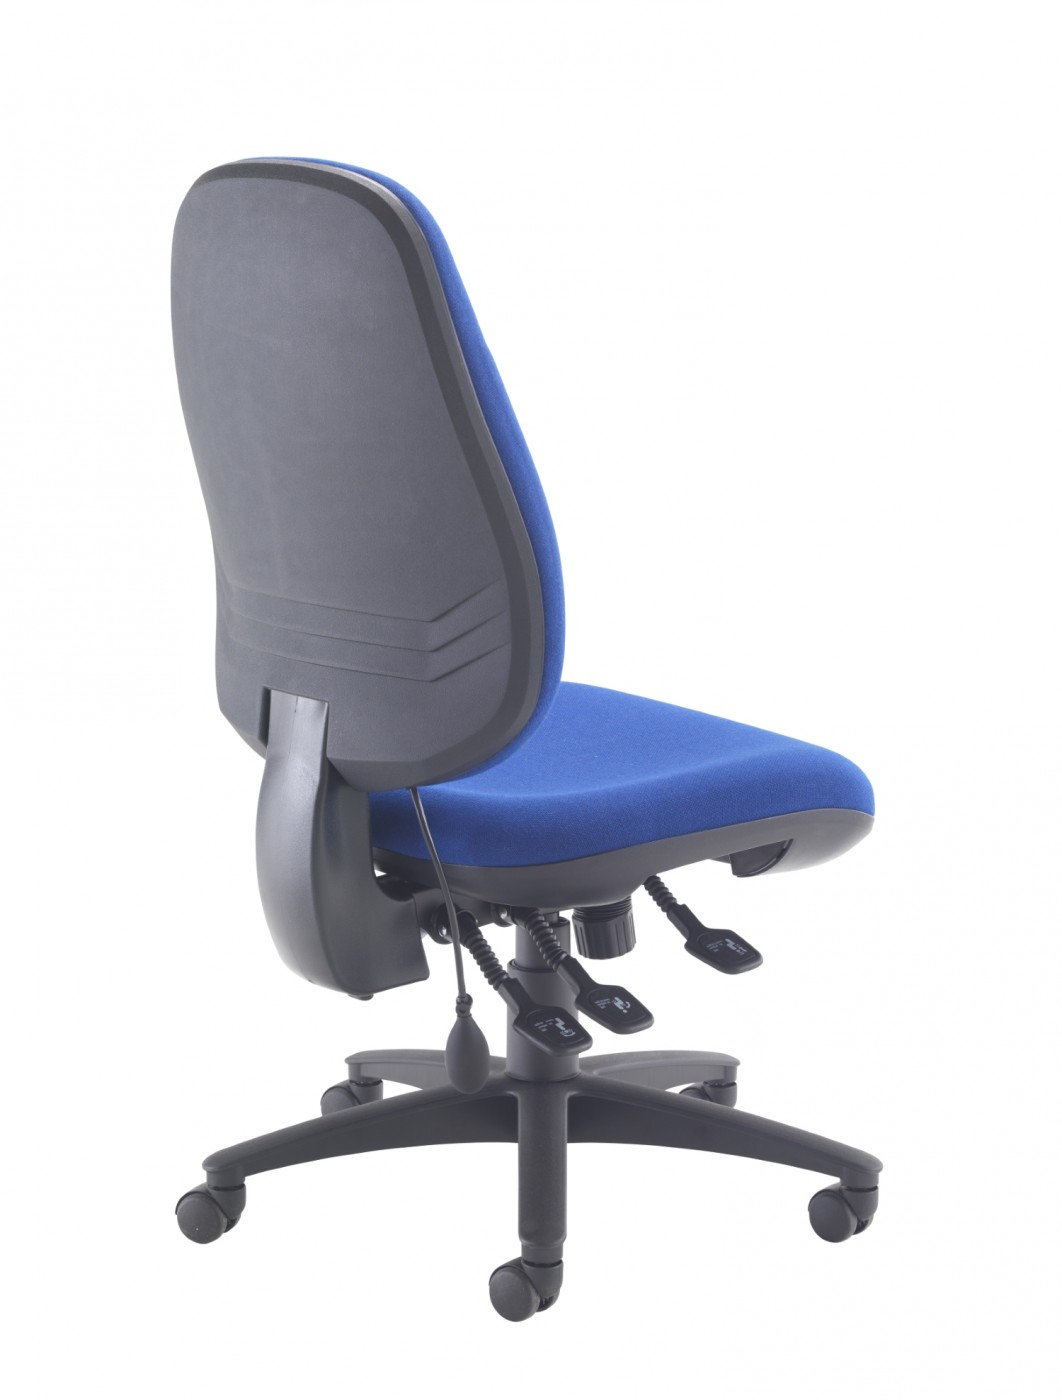 TC Office Concept Maxi Ergo Office Chair CH0808 In Blue   Enlarged View